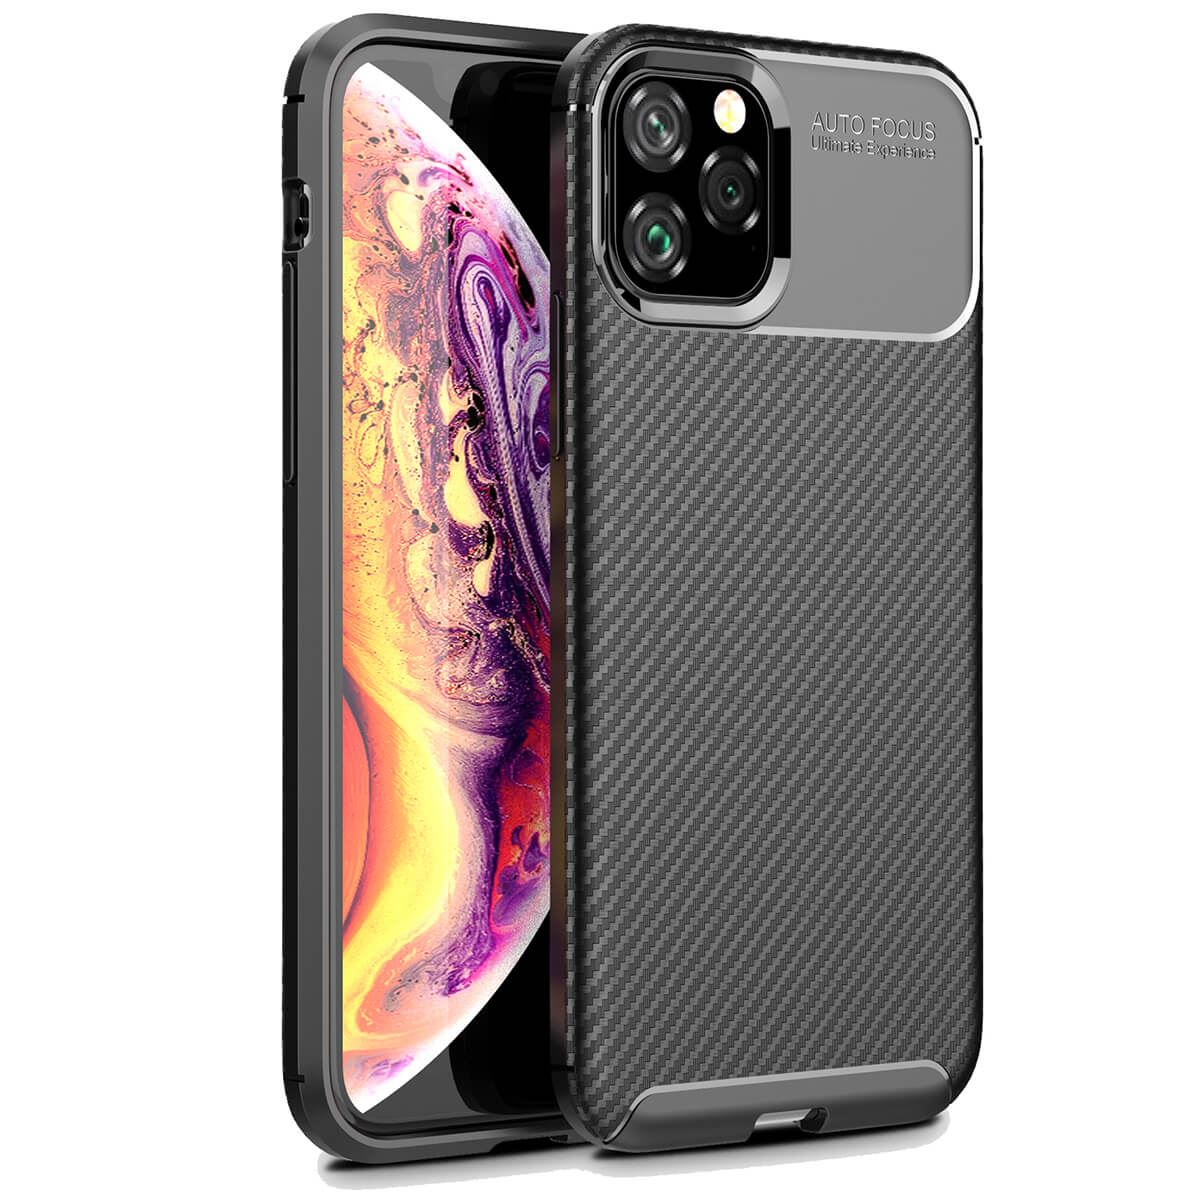 Carbon-Fibre-Soft-Case-For-iPhone-11-X-XR-Max-8-7-6-Plus-Slim-TPU-Silicone-Cover thumbnail 7